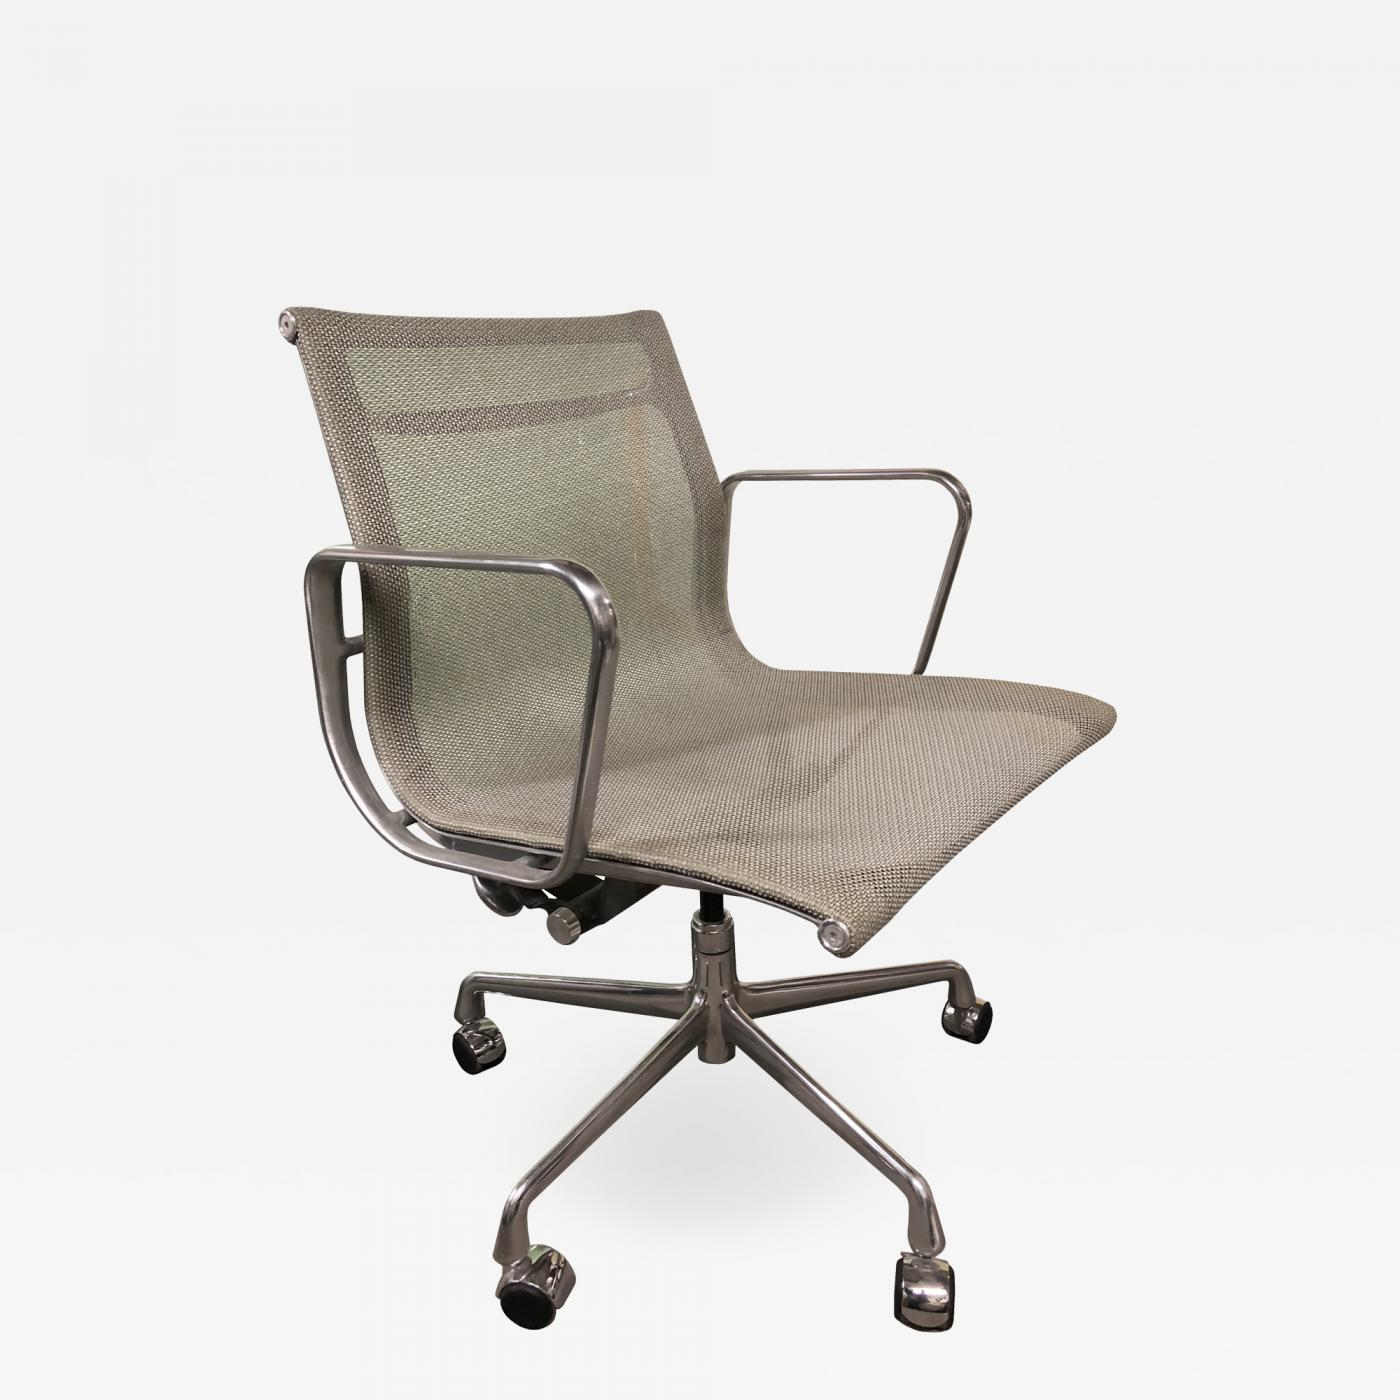 Charles Ray Eames Eames For Herman Miller Aluminium Group Chair In Gray Mesh